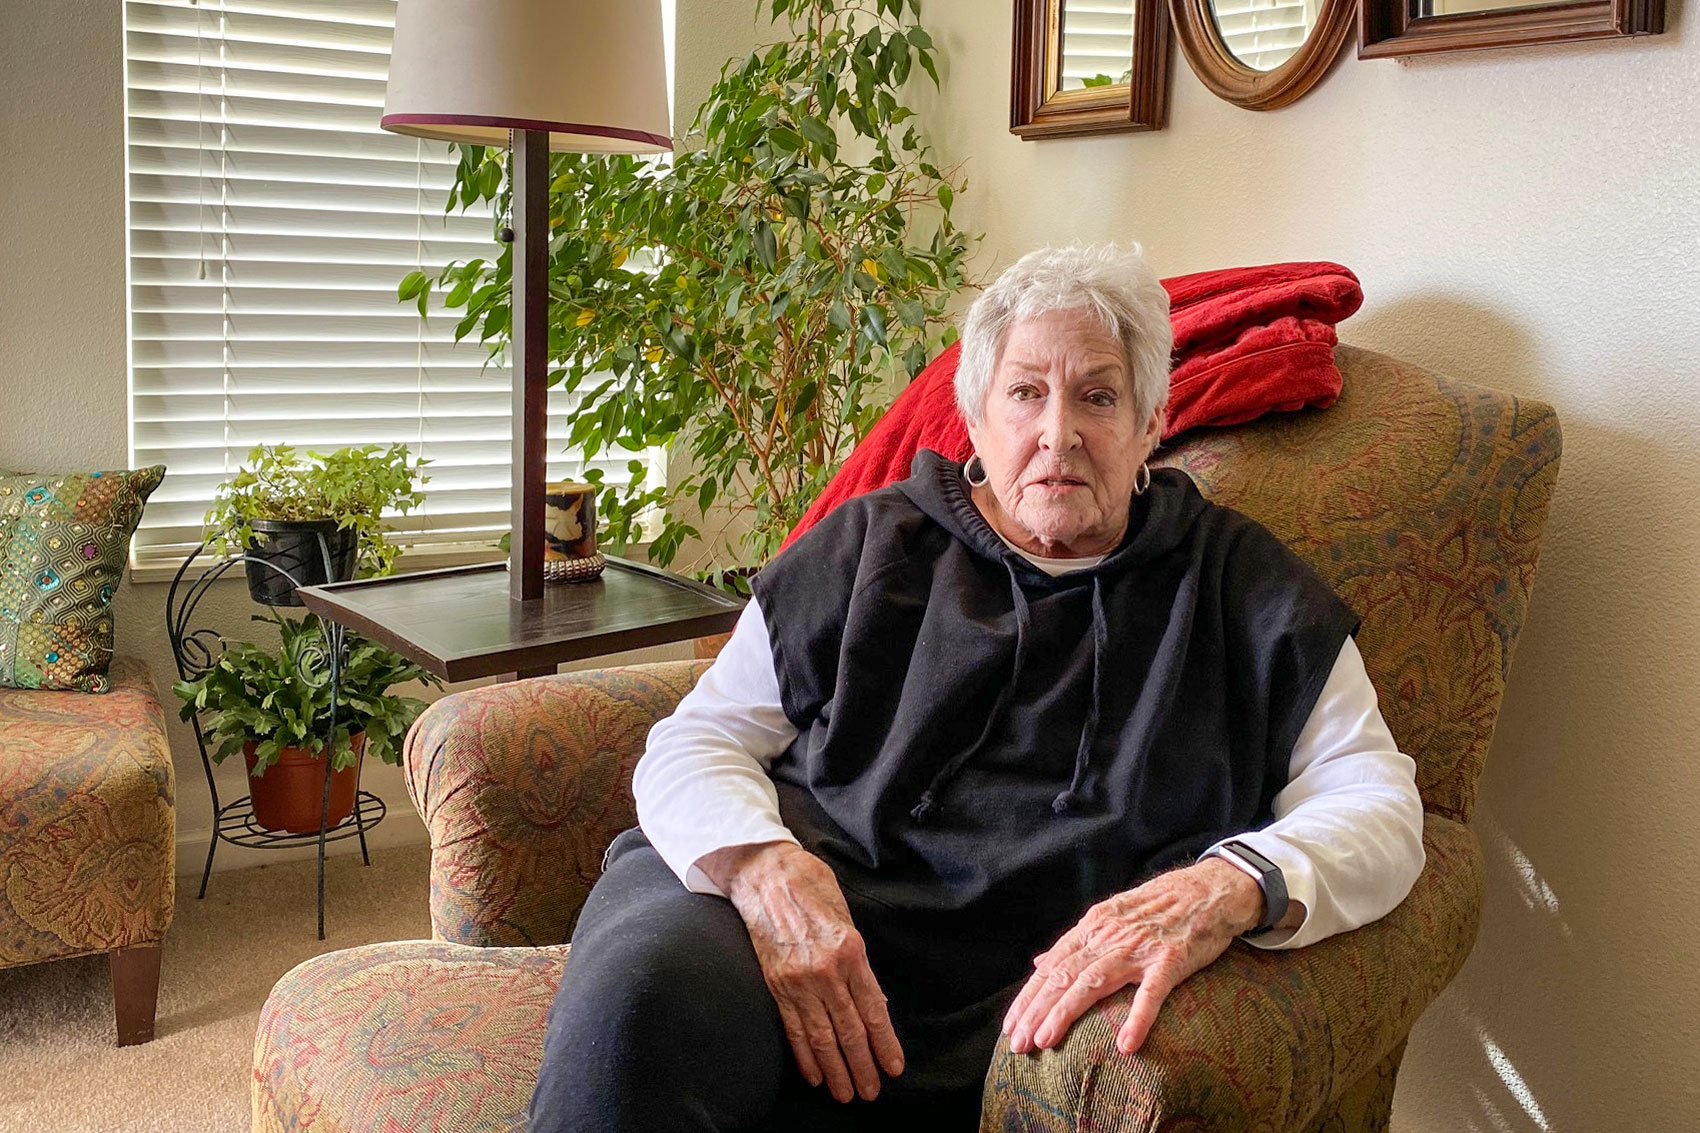 Susan Sarchet of Denver received comprehensive medical care at home recently and avoided hospitalization when her COPD symptoms worsened through a hospital-at-home program.